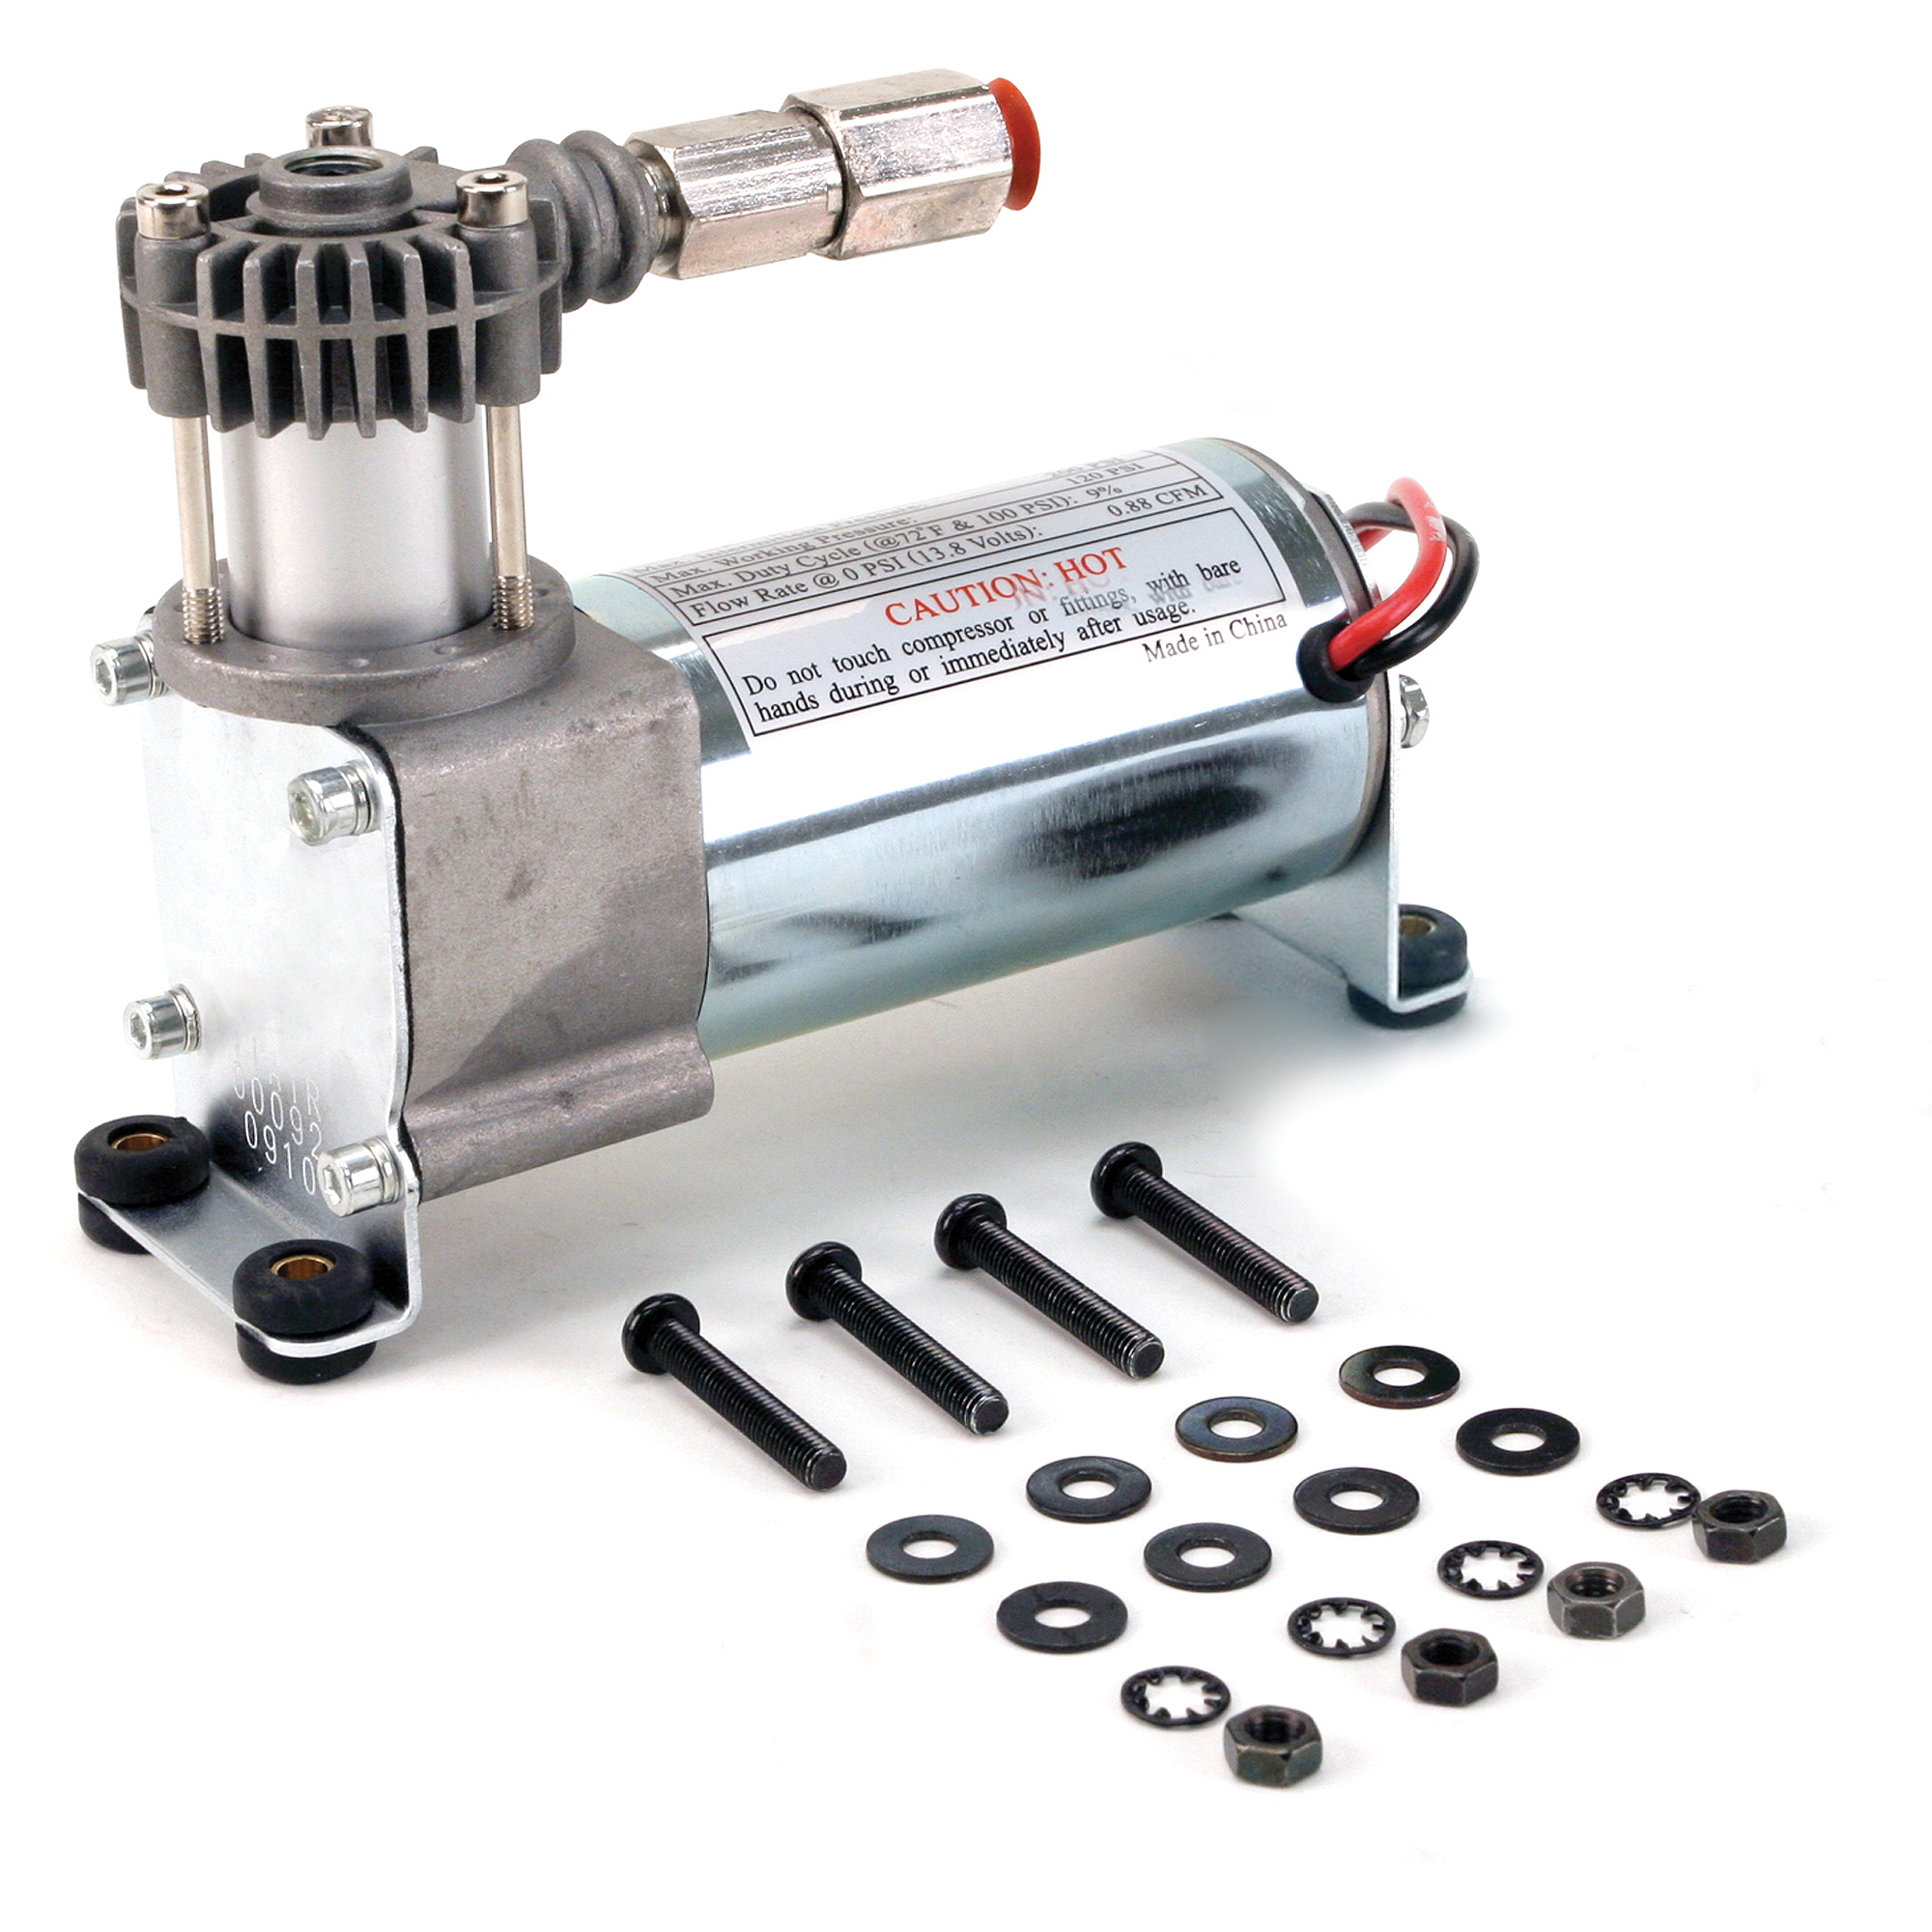 Viair 90 Compressor Kit